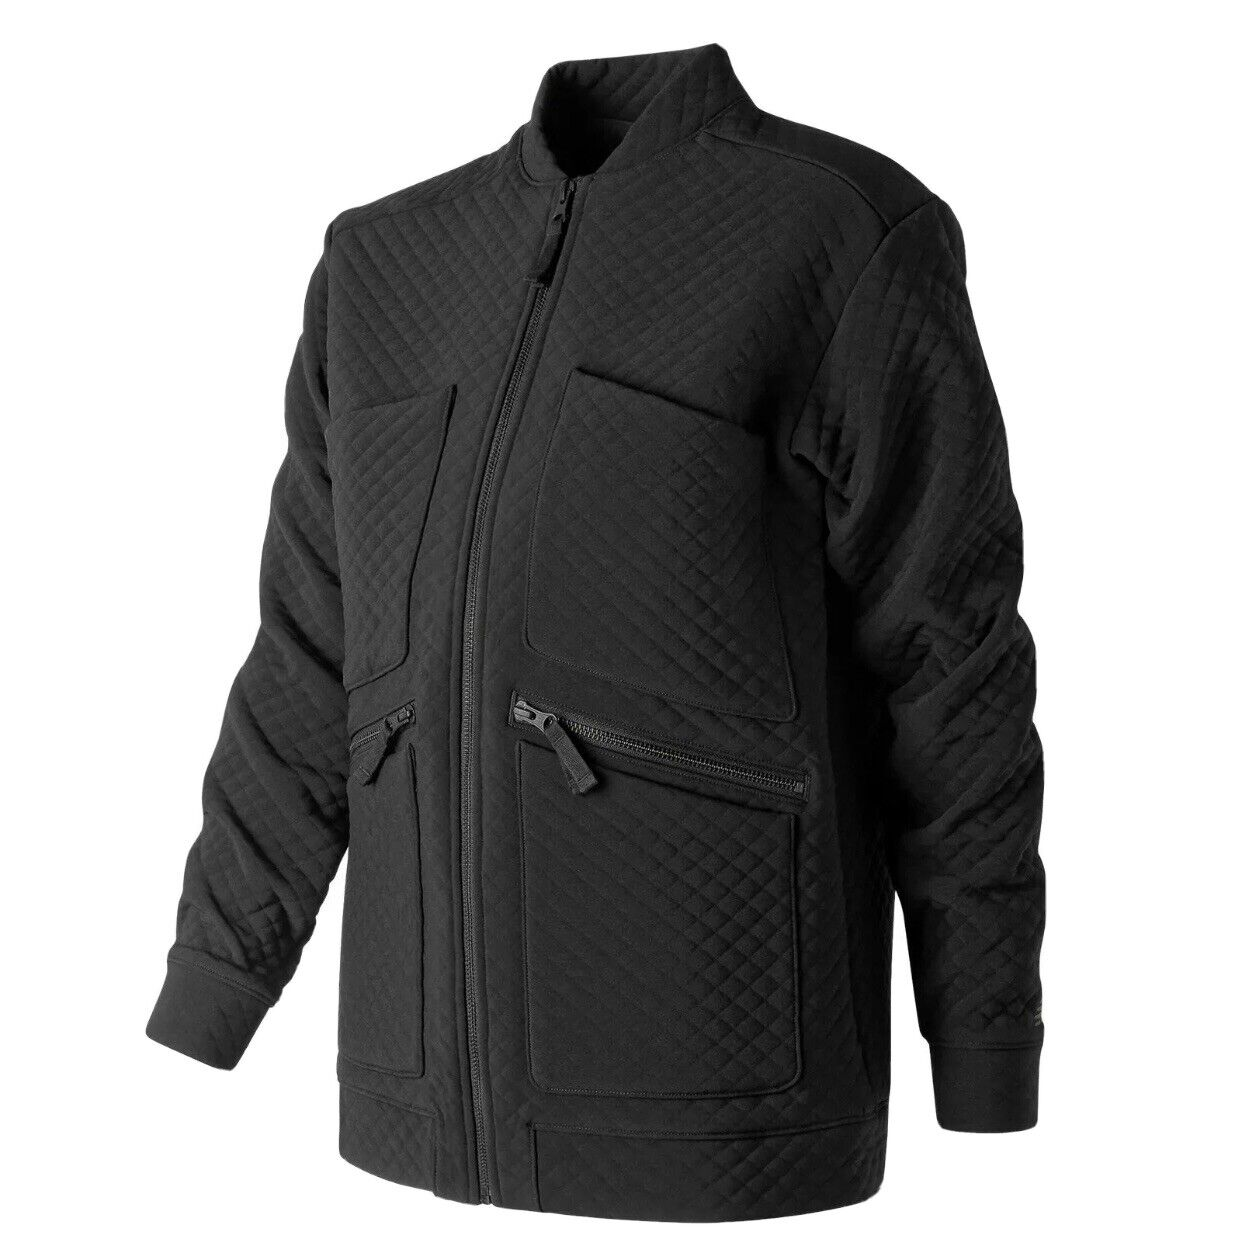 New Balance Womens Heatloft Jacket Black Quilted Size S NWT